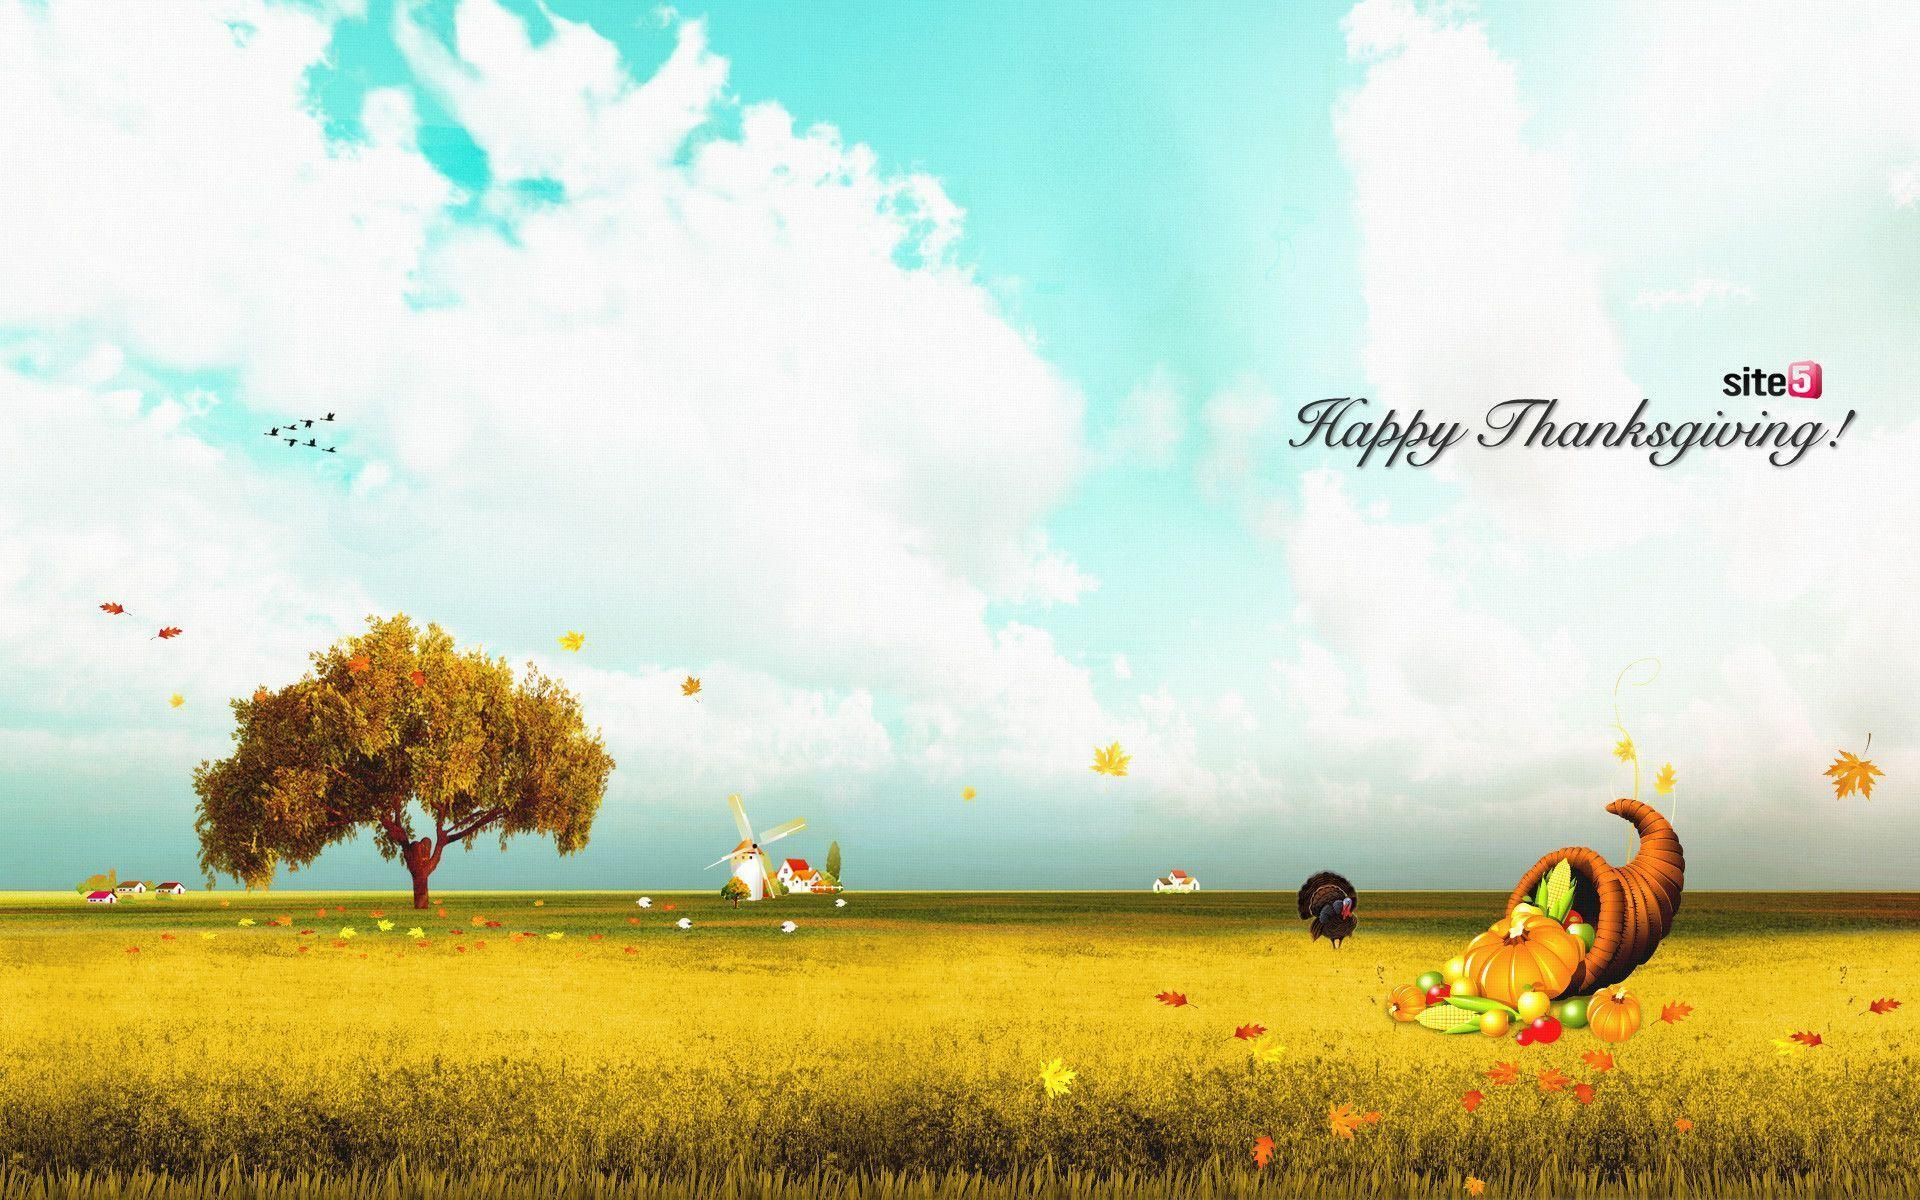 thanksgiving wallpapers for windows 7 - photo #31